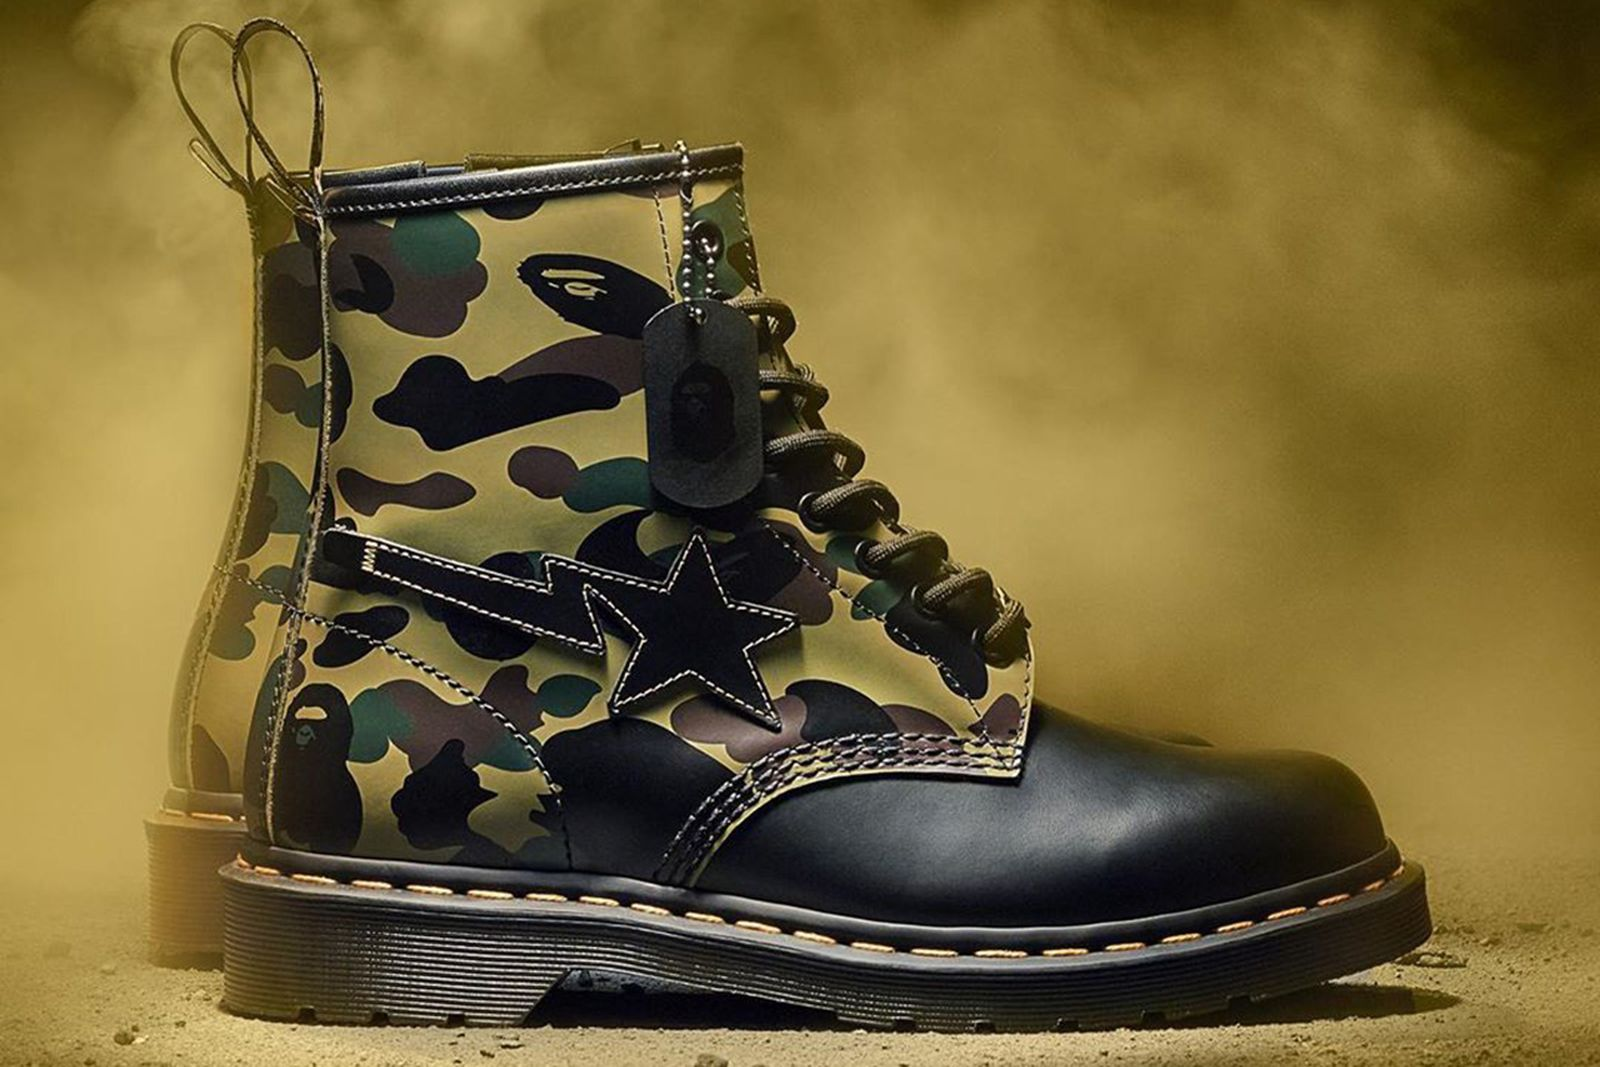 bape-dr-martens-1460-release-date-price-01